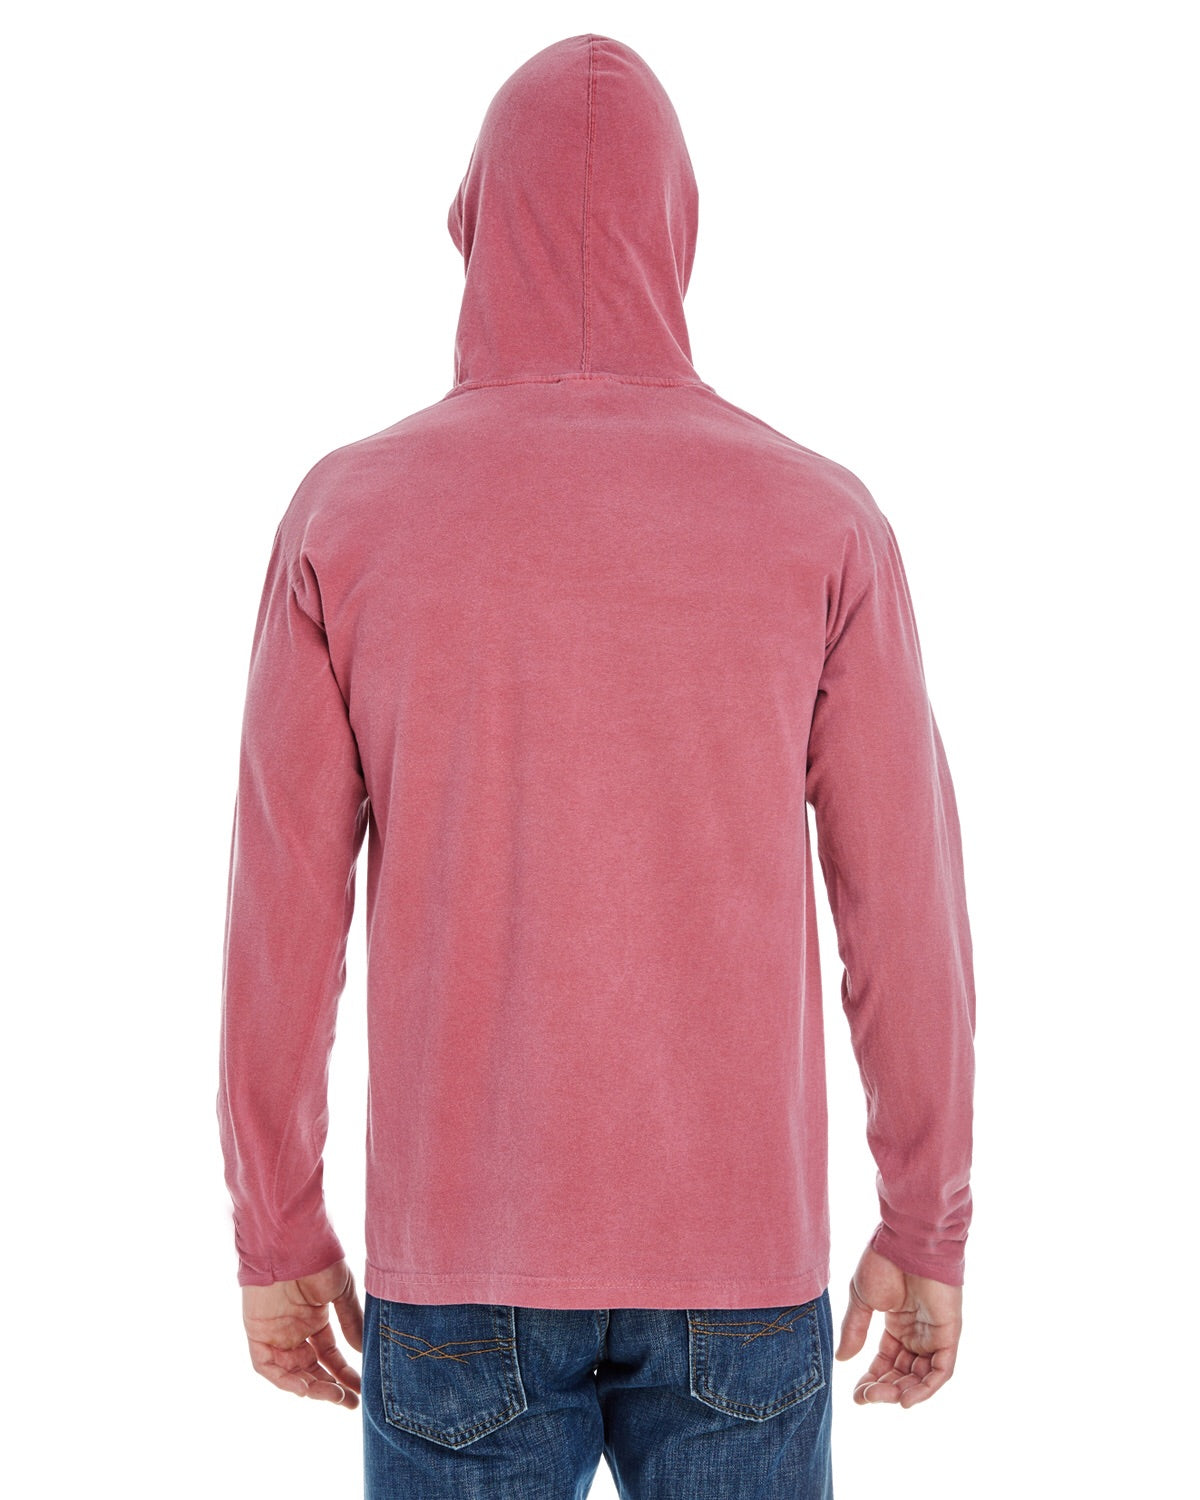 Merry and bright long sleeved hooded t shirt